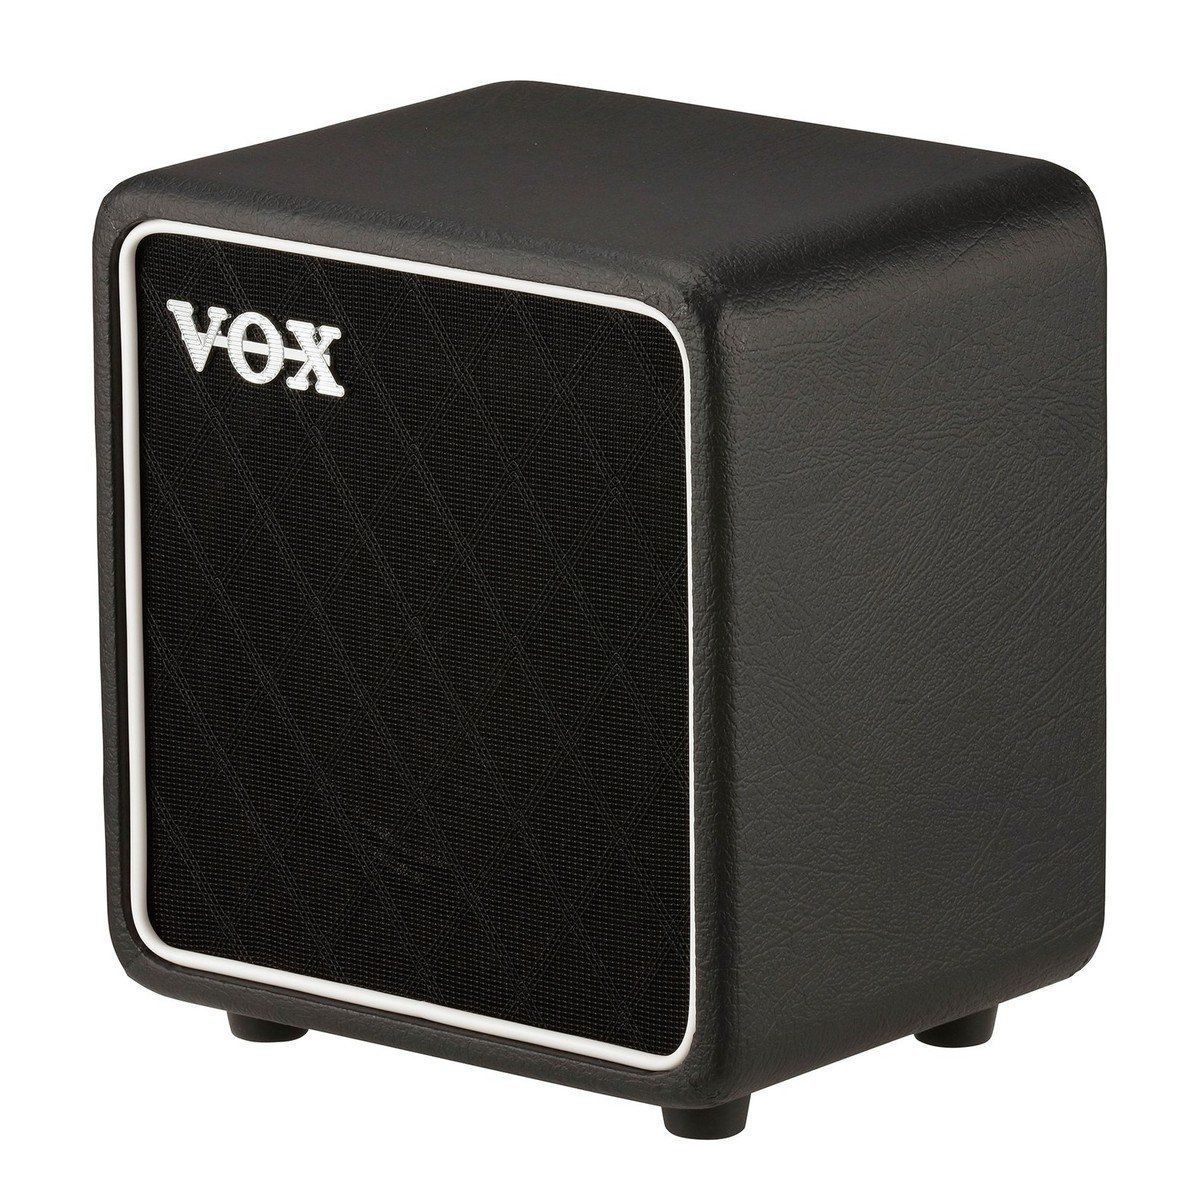 vox bc108 electric guitar amplifier black cabinet 8 speaker bc108. Black Bedroom Furniture Sets. Home Design Ideas